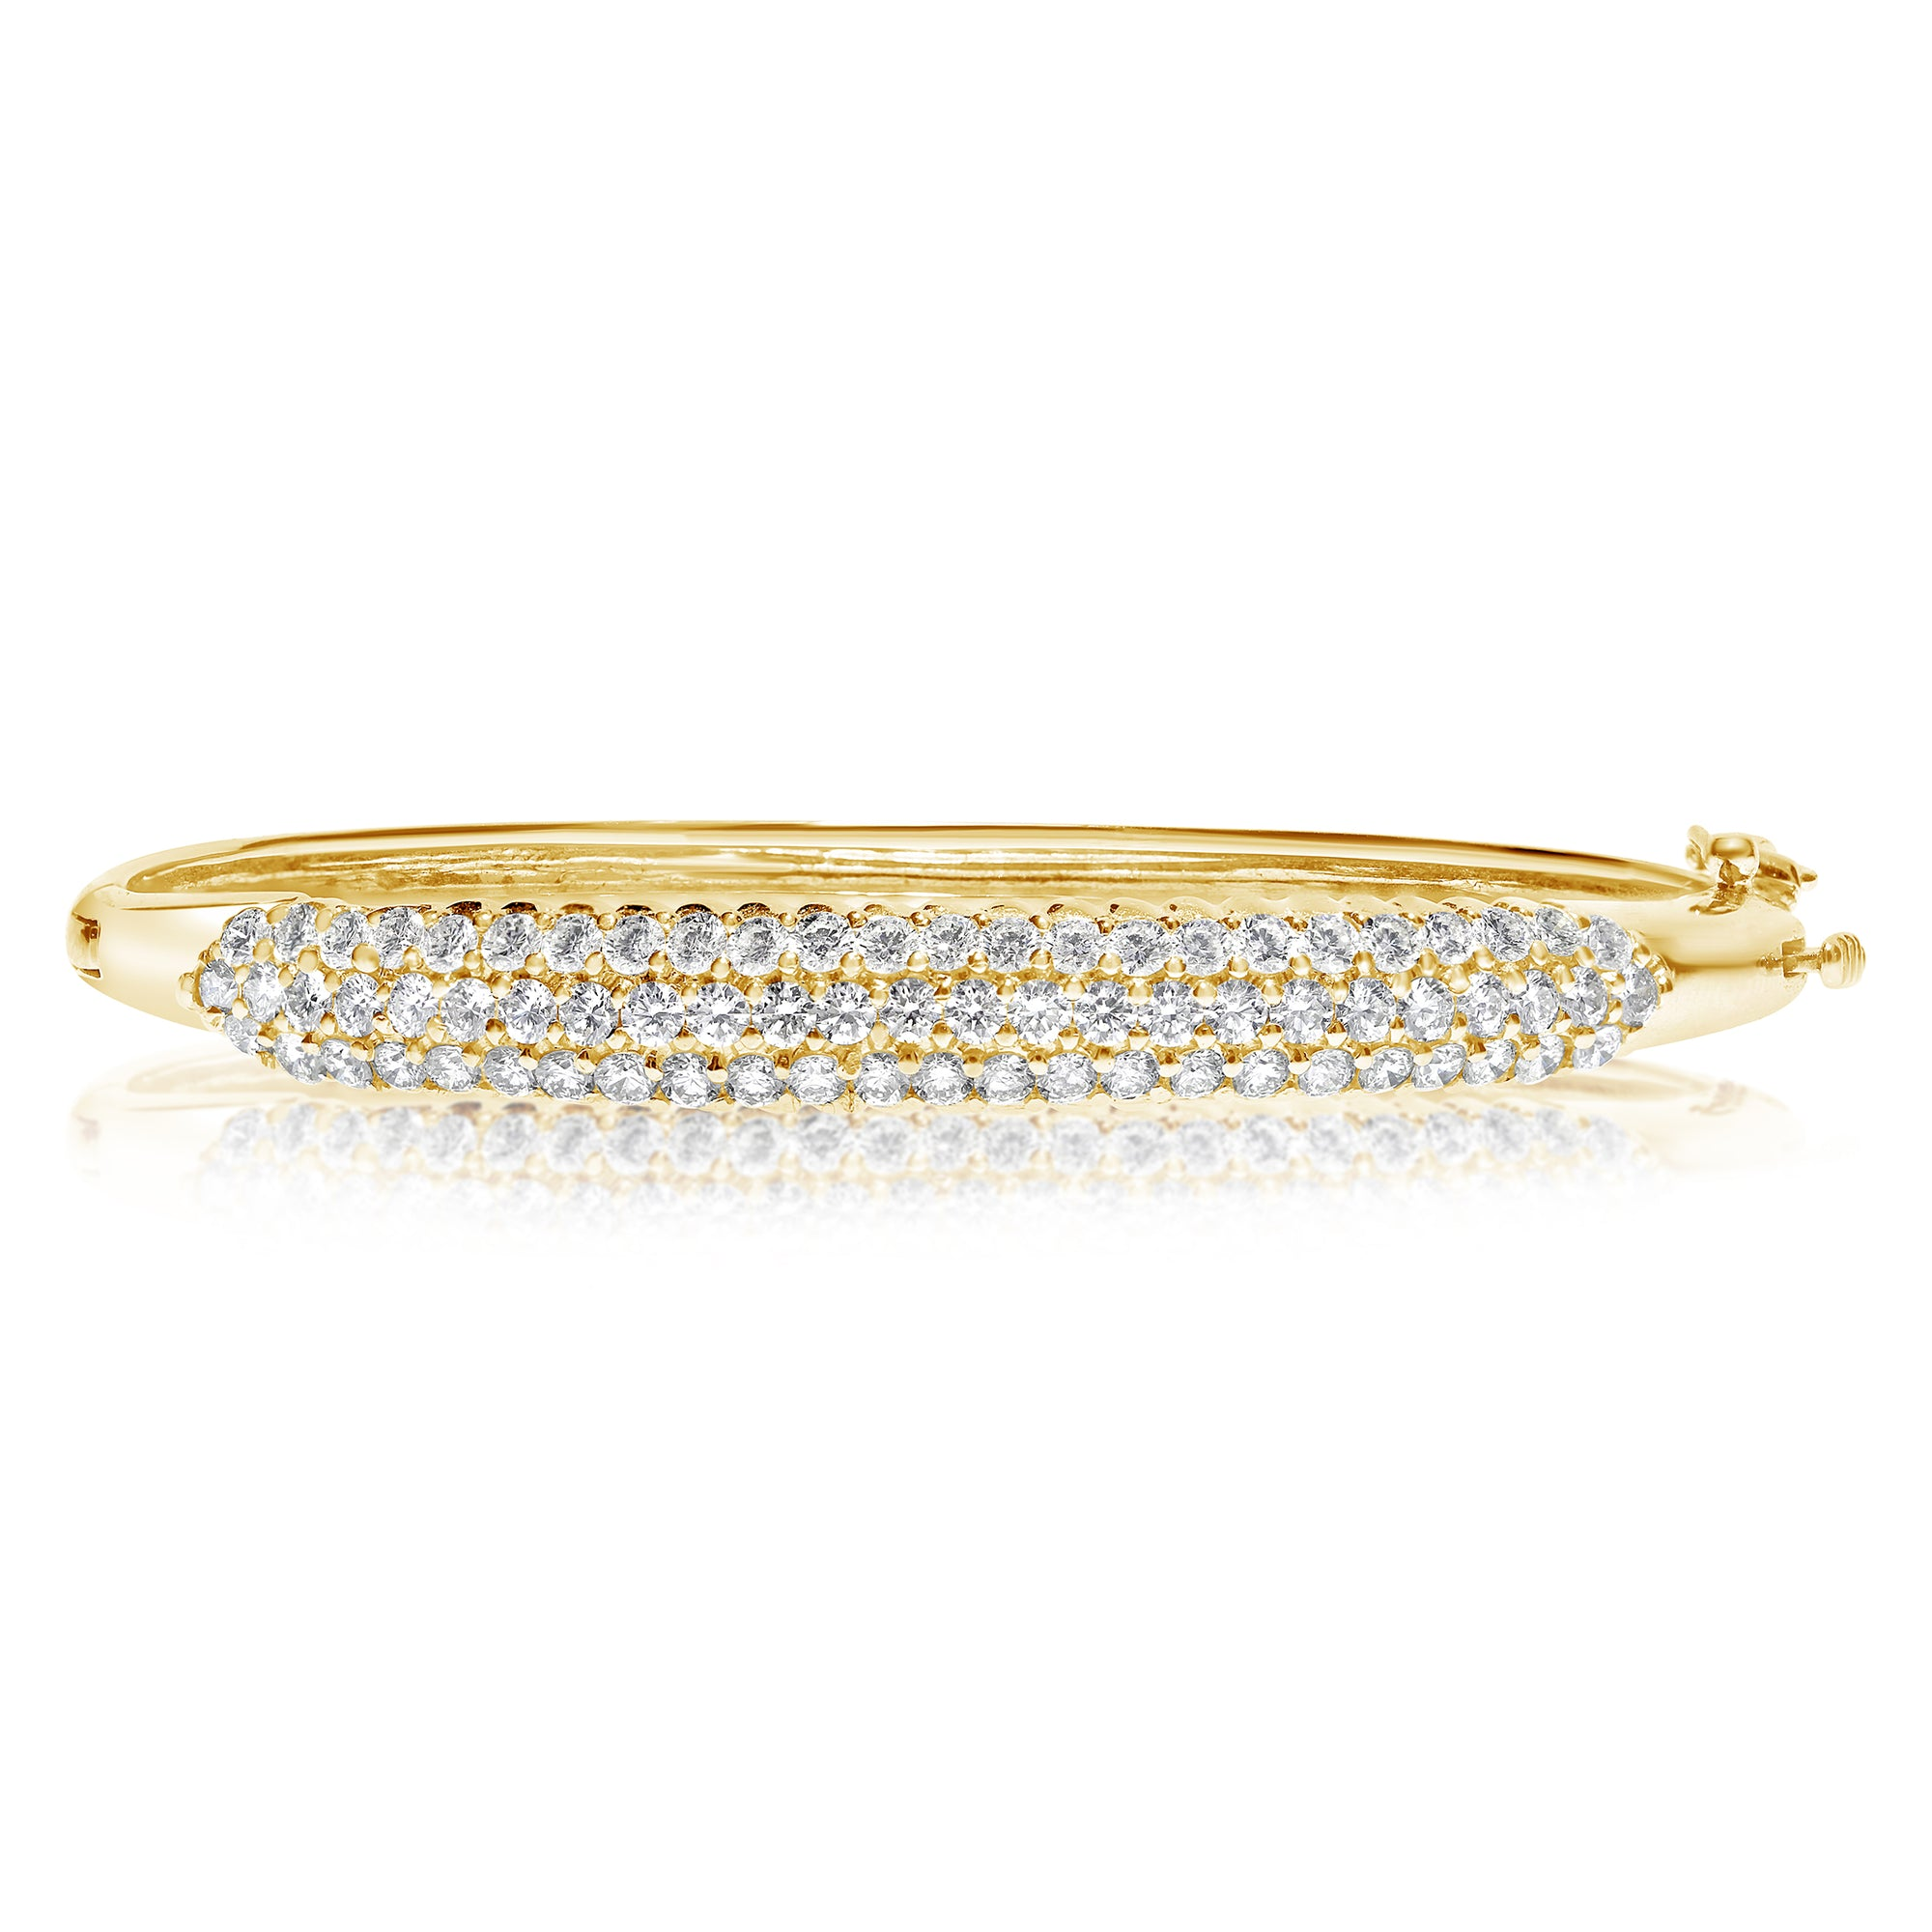 rgyg bracelet bangles tennis diamond pave bangle catalog rg yg